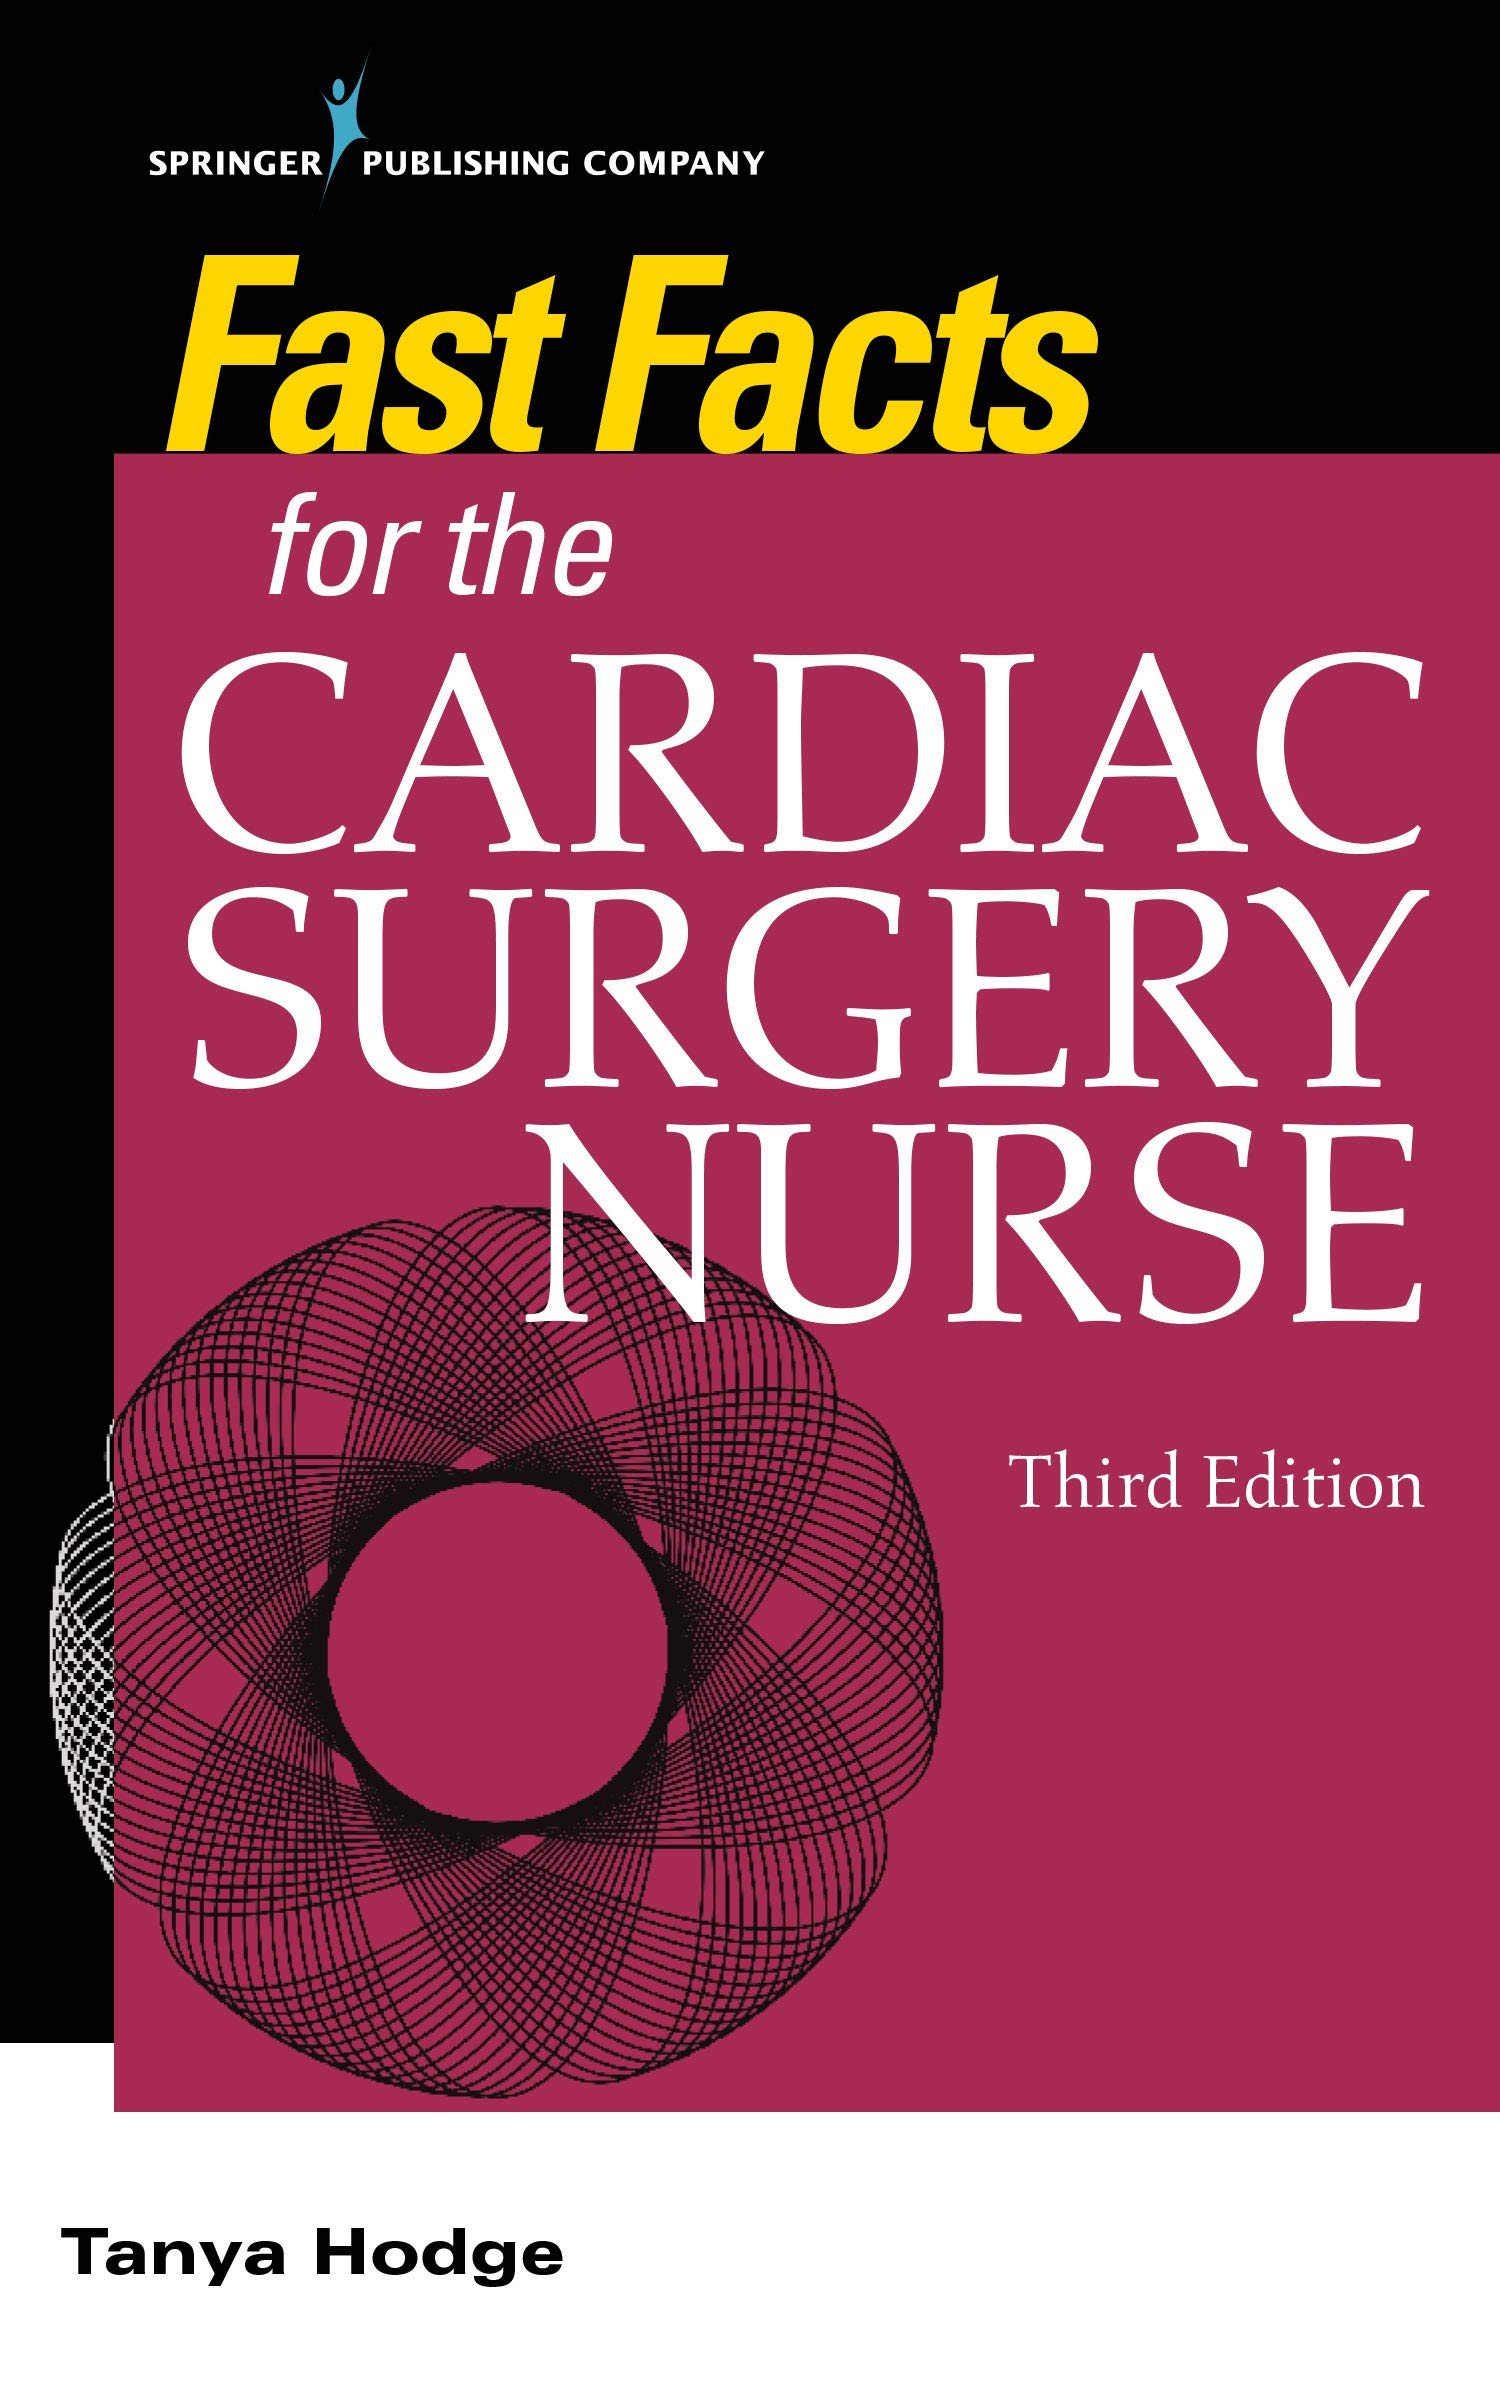 Fast Facts for the Cardiac Surgery Nurse, Third Edition: Caring for Cardiac Surgery Patients by Springer Publishing Company